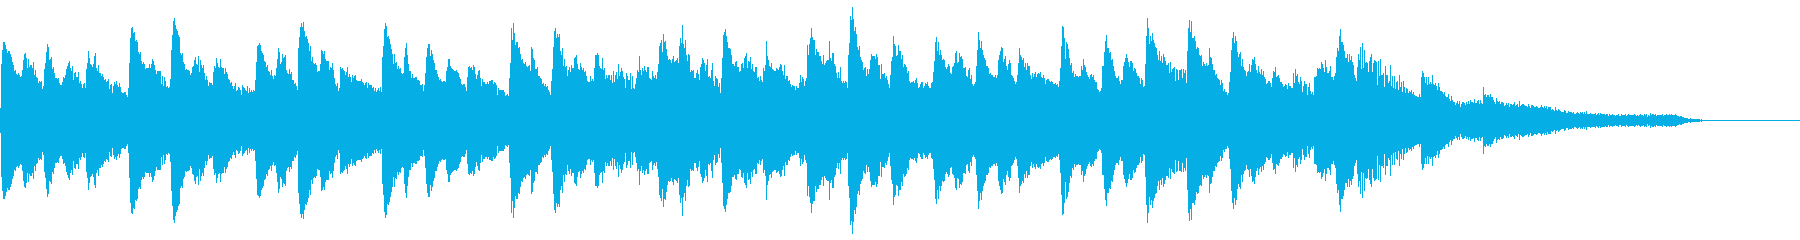 Sparkly BGM's reproduced waveform